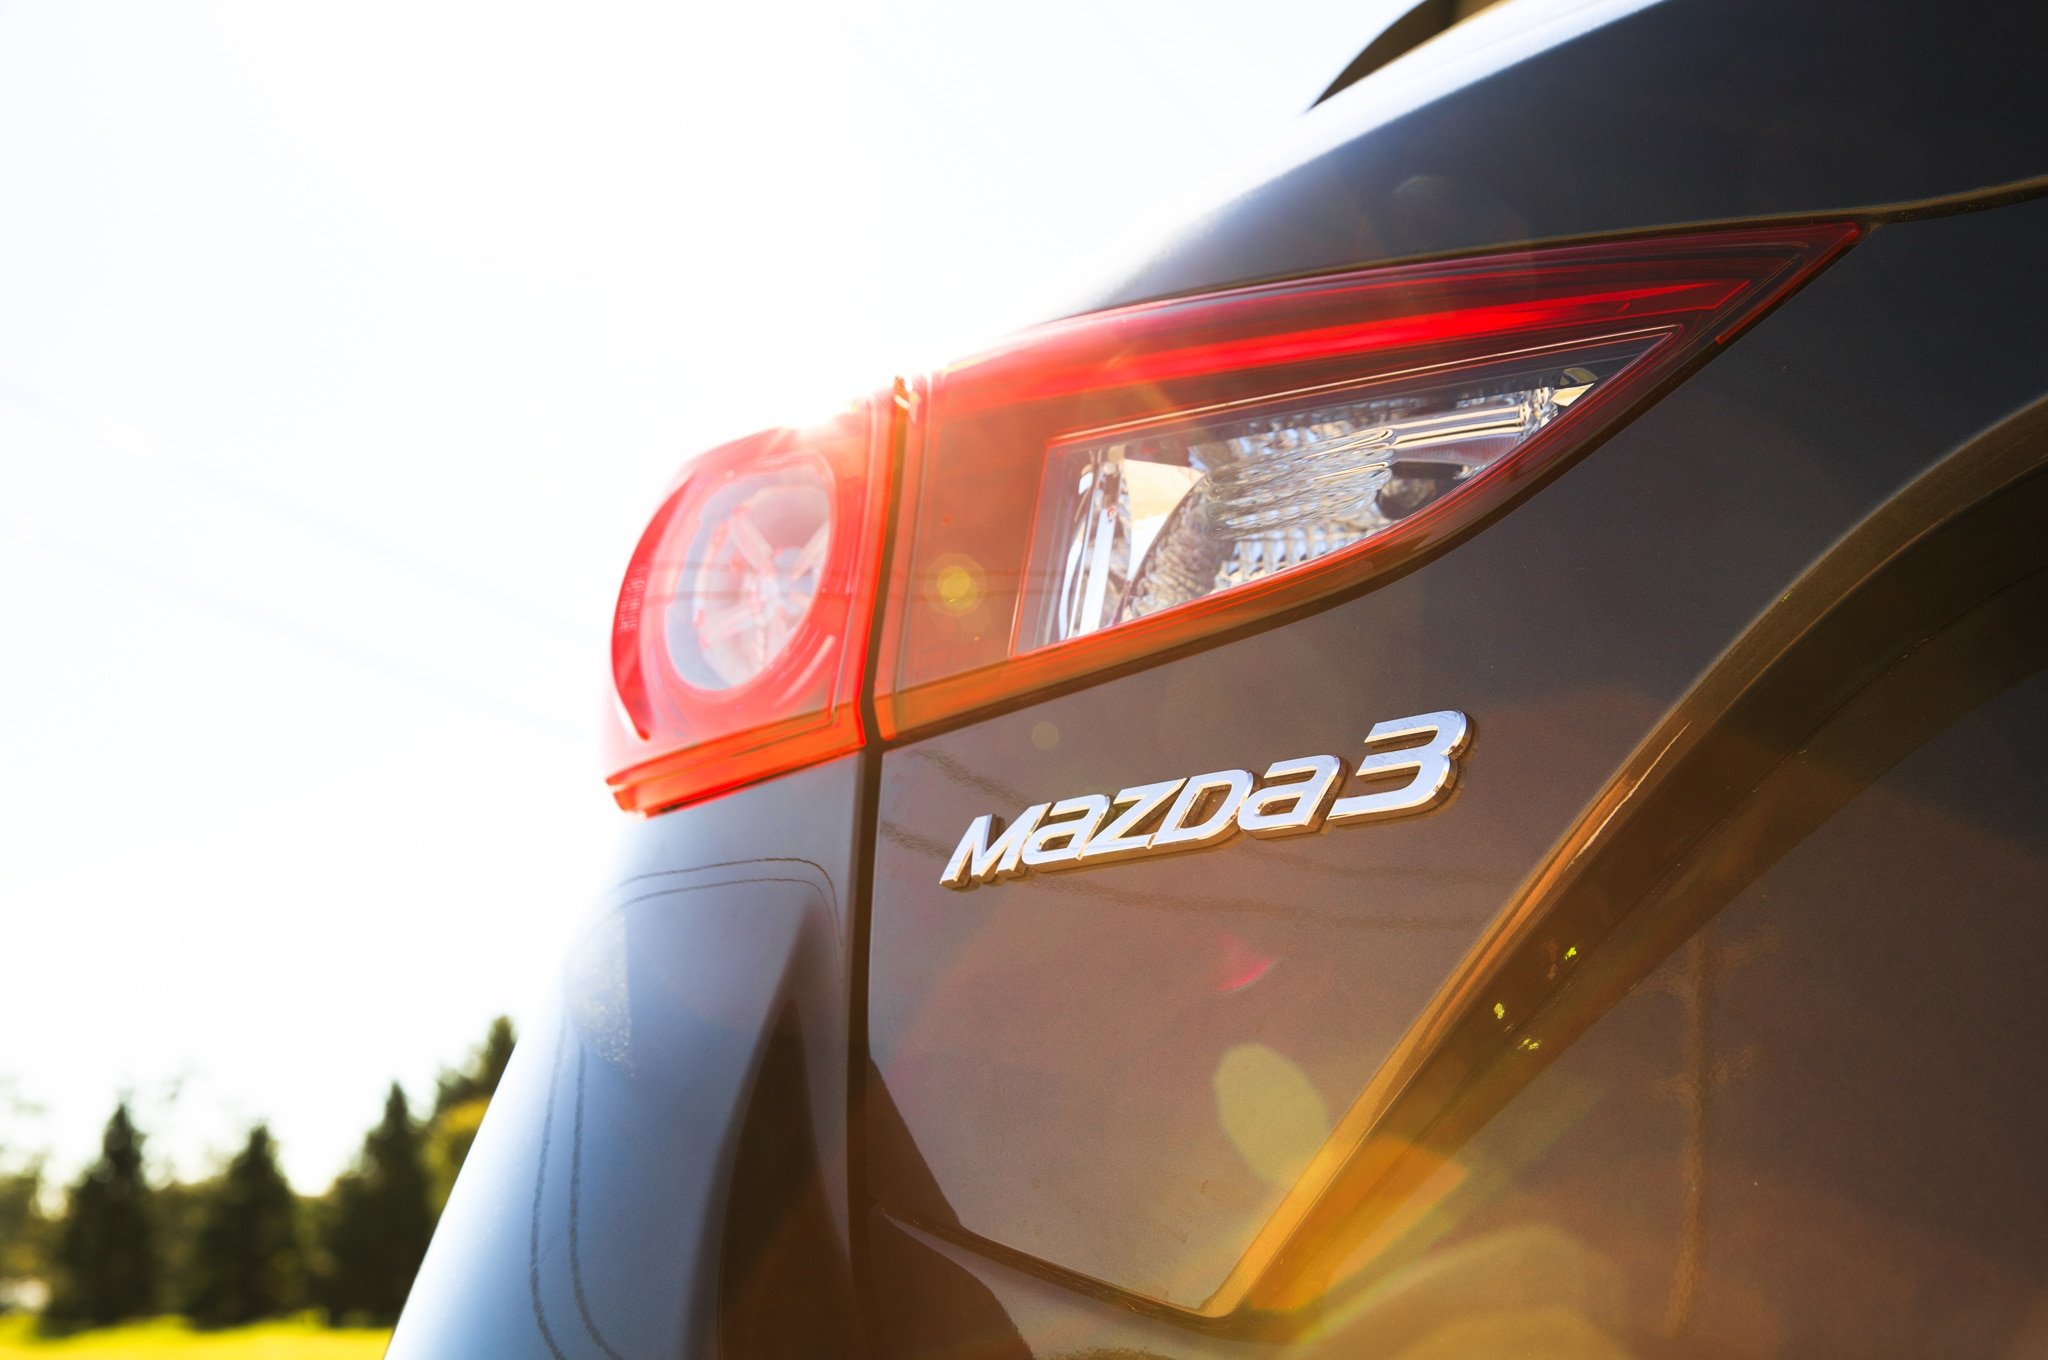 2014 Mazda 3 Automobile Of The Year Contender 61